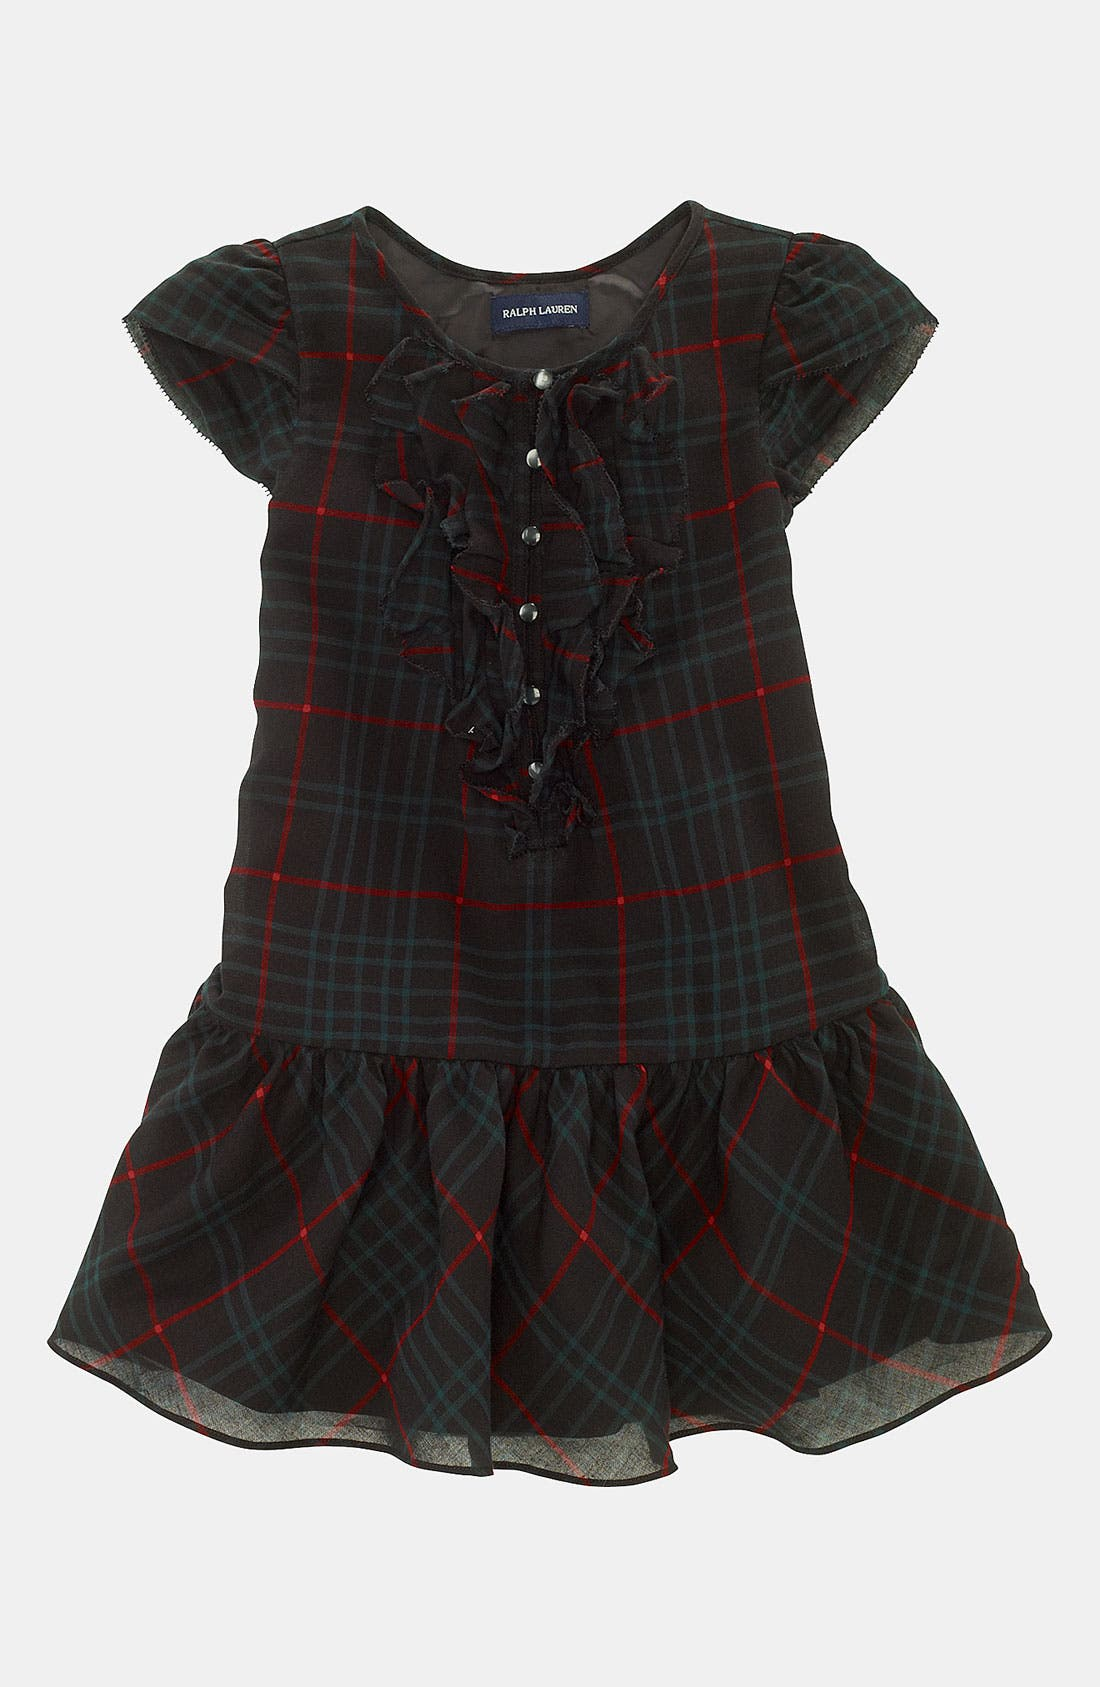 Main Image - Ralph Lauren Plaid Dress (Toddler)